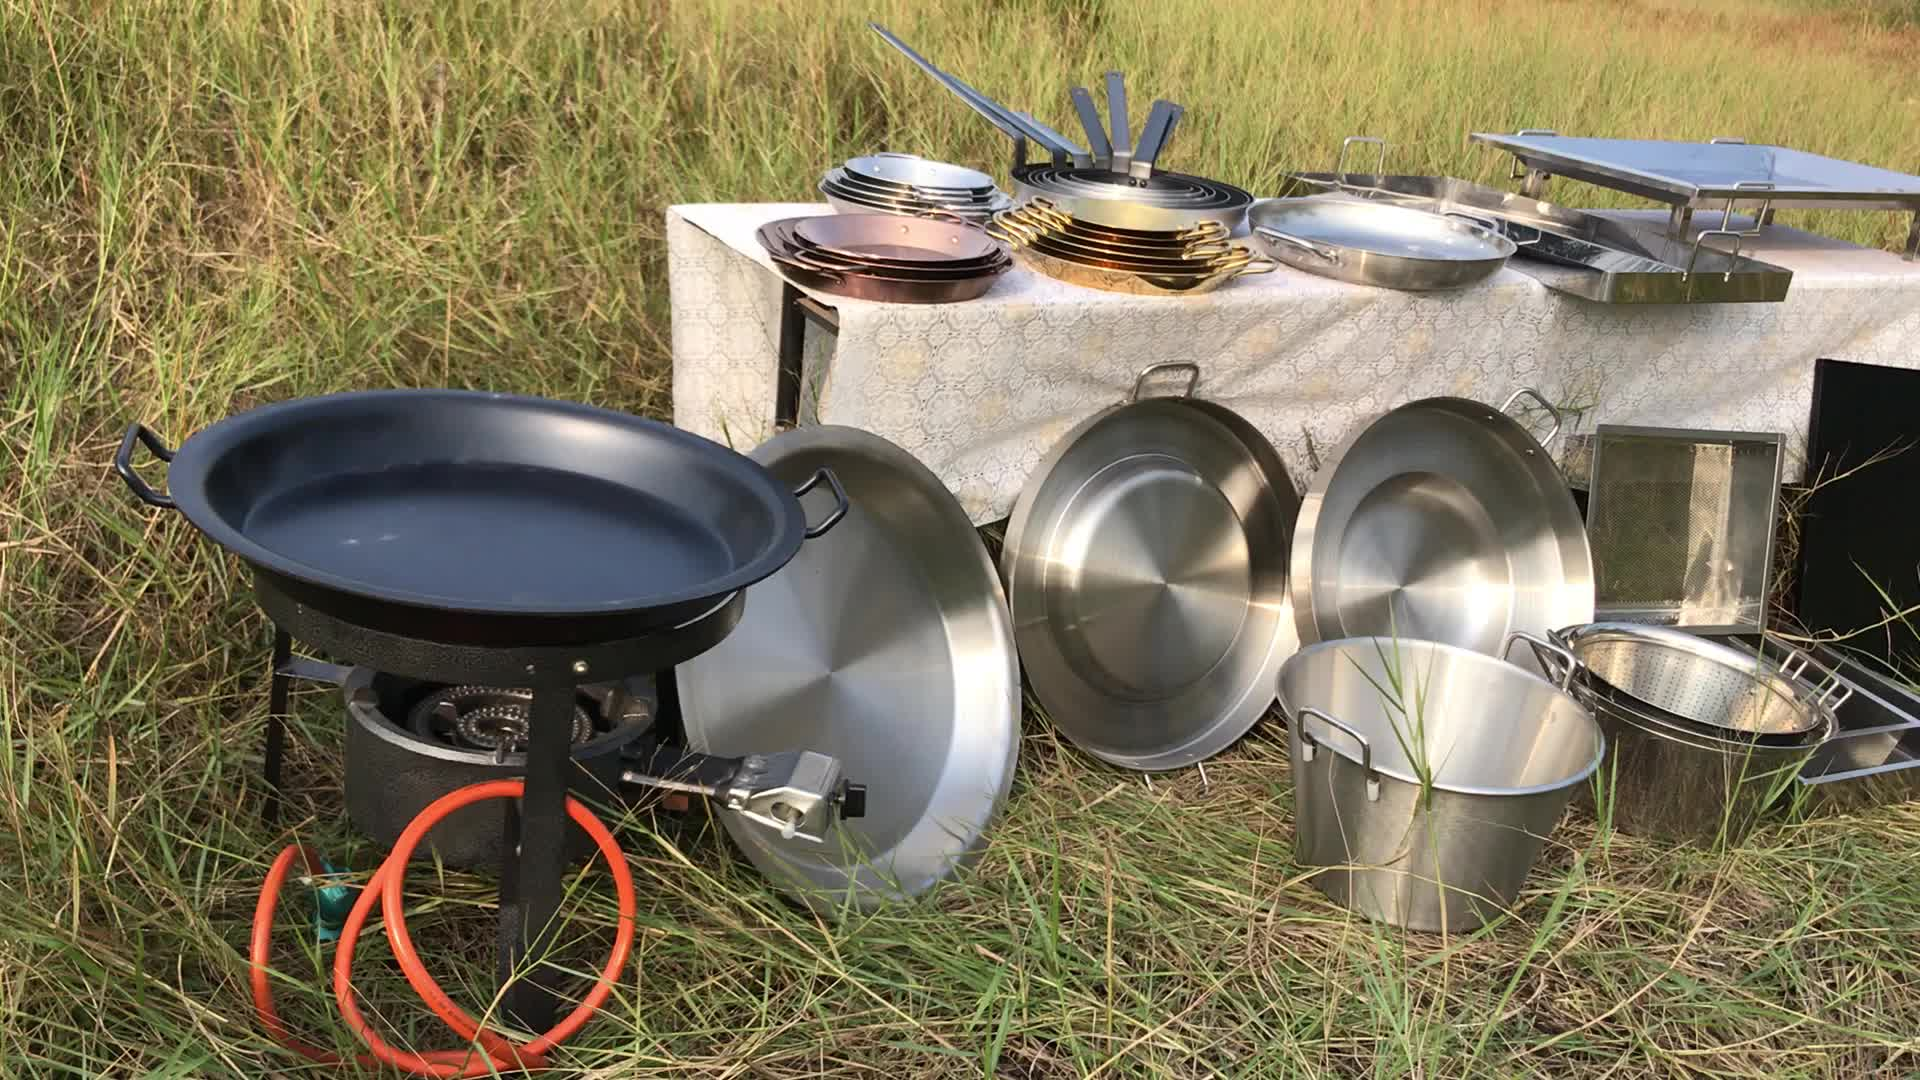 High quality outdoor kitchen barbecue easy-clean aluminum stainless steel fry pan